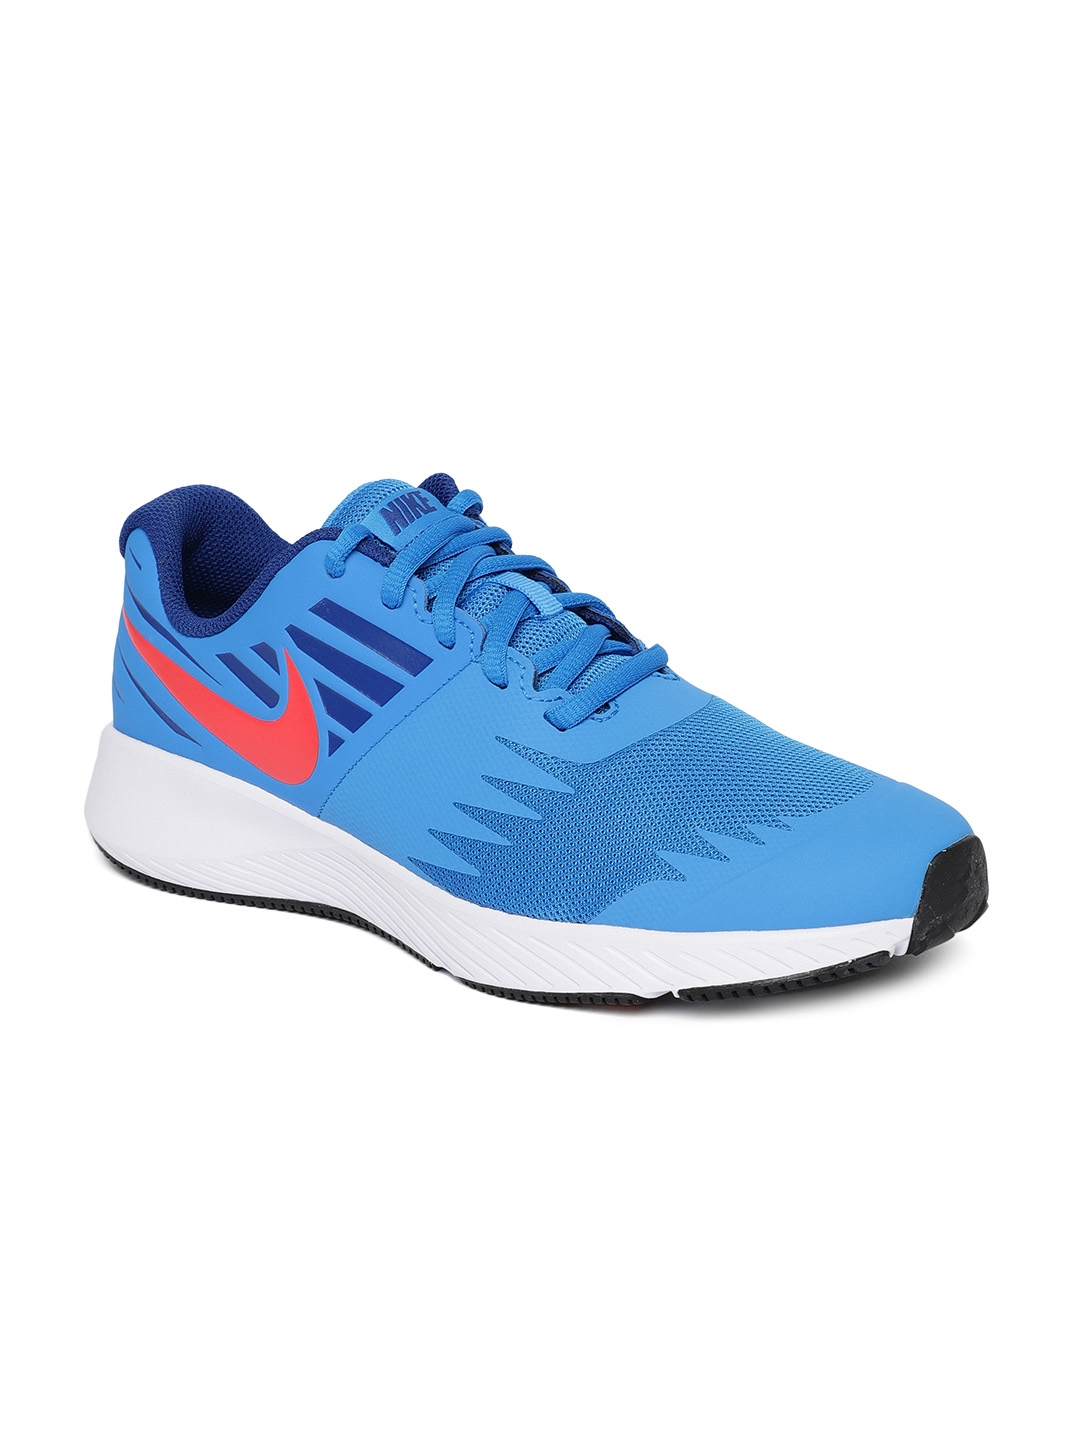 ca7f9033fd1 Buy Nike Boys Blue Star Running Shoes - Sports Shoes for Boys ...